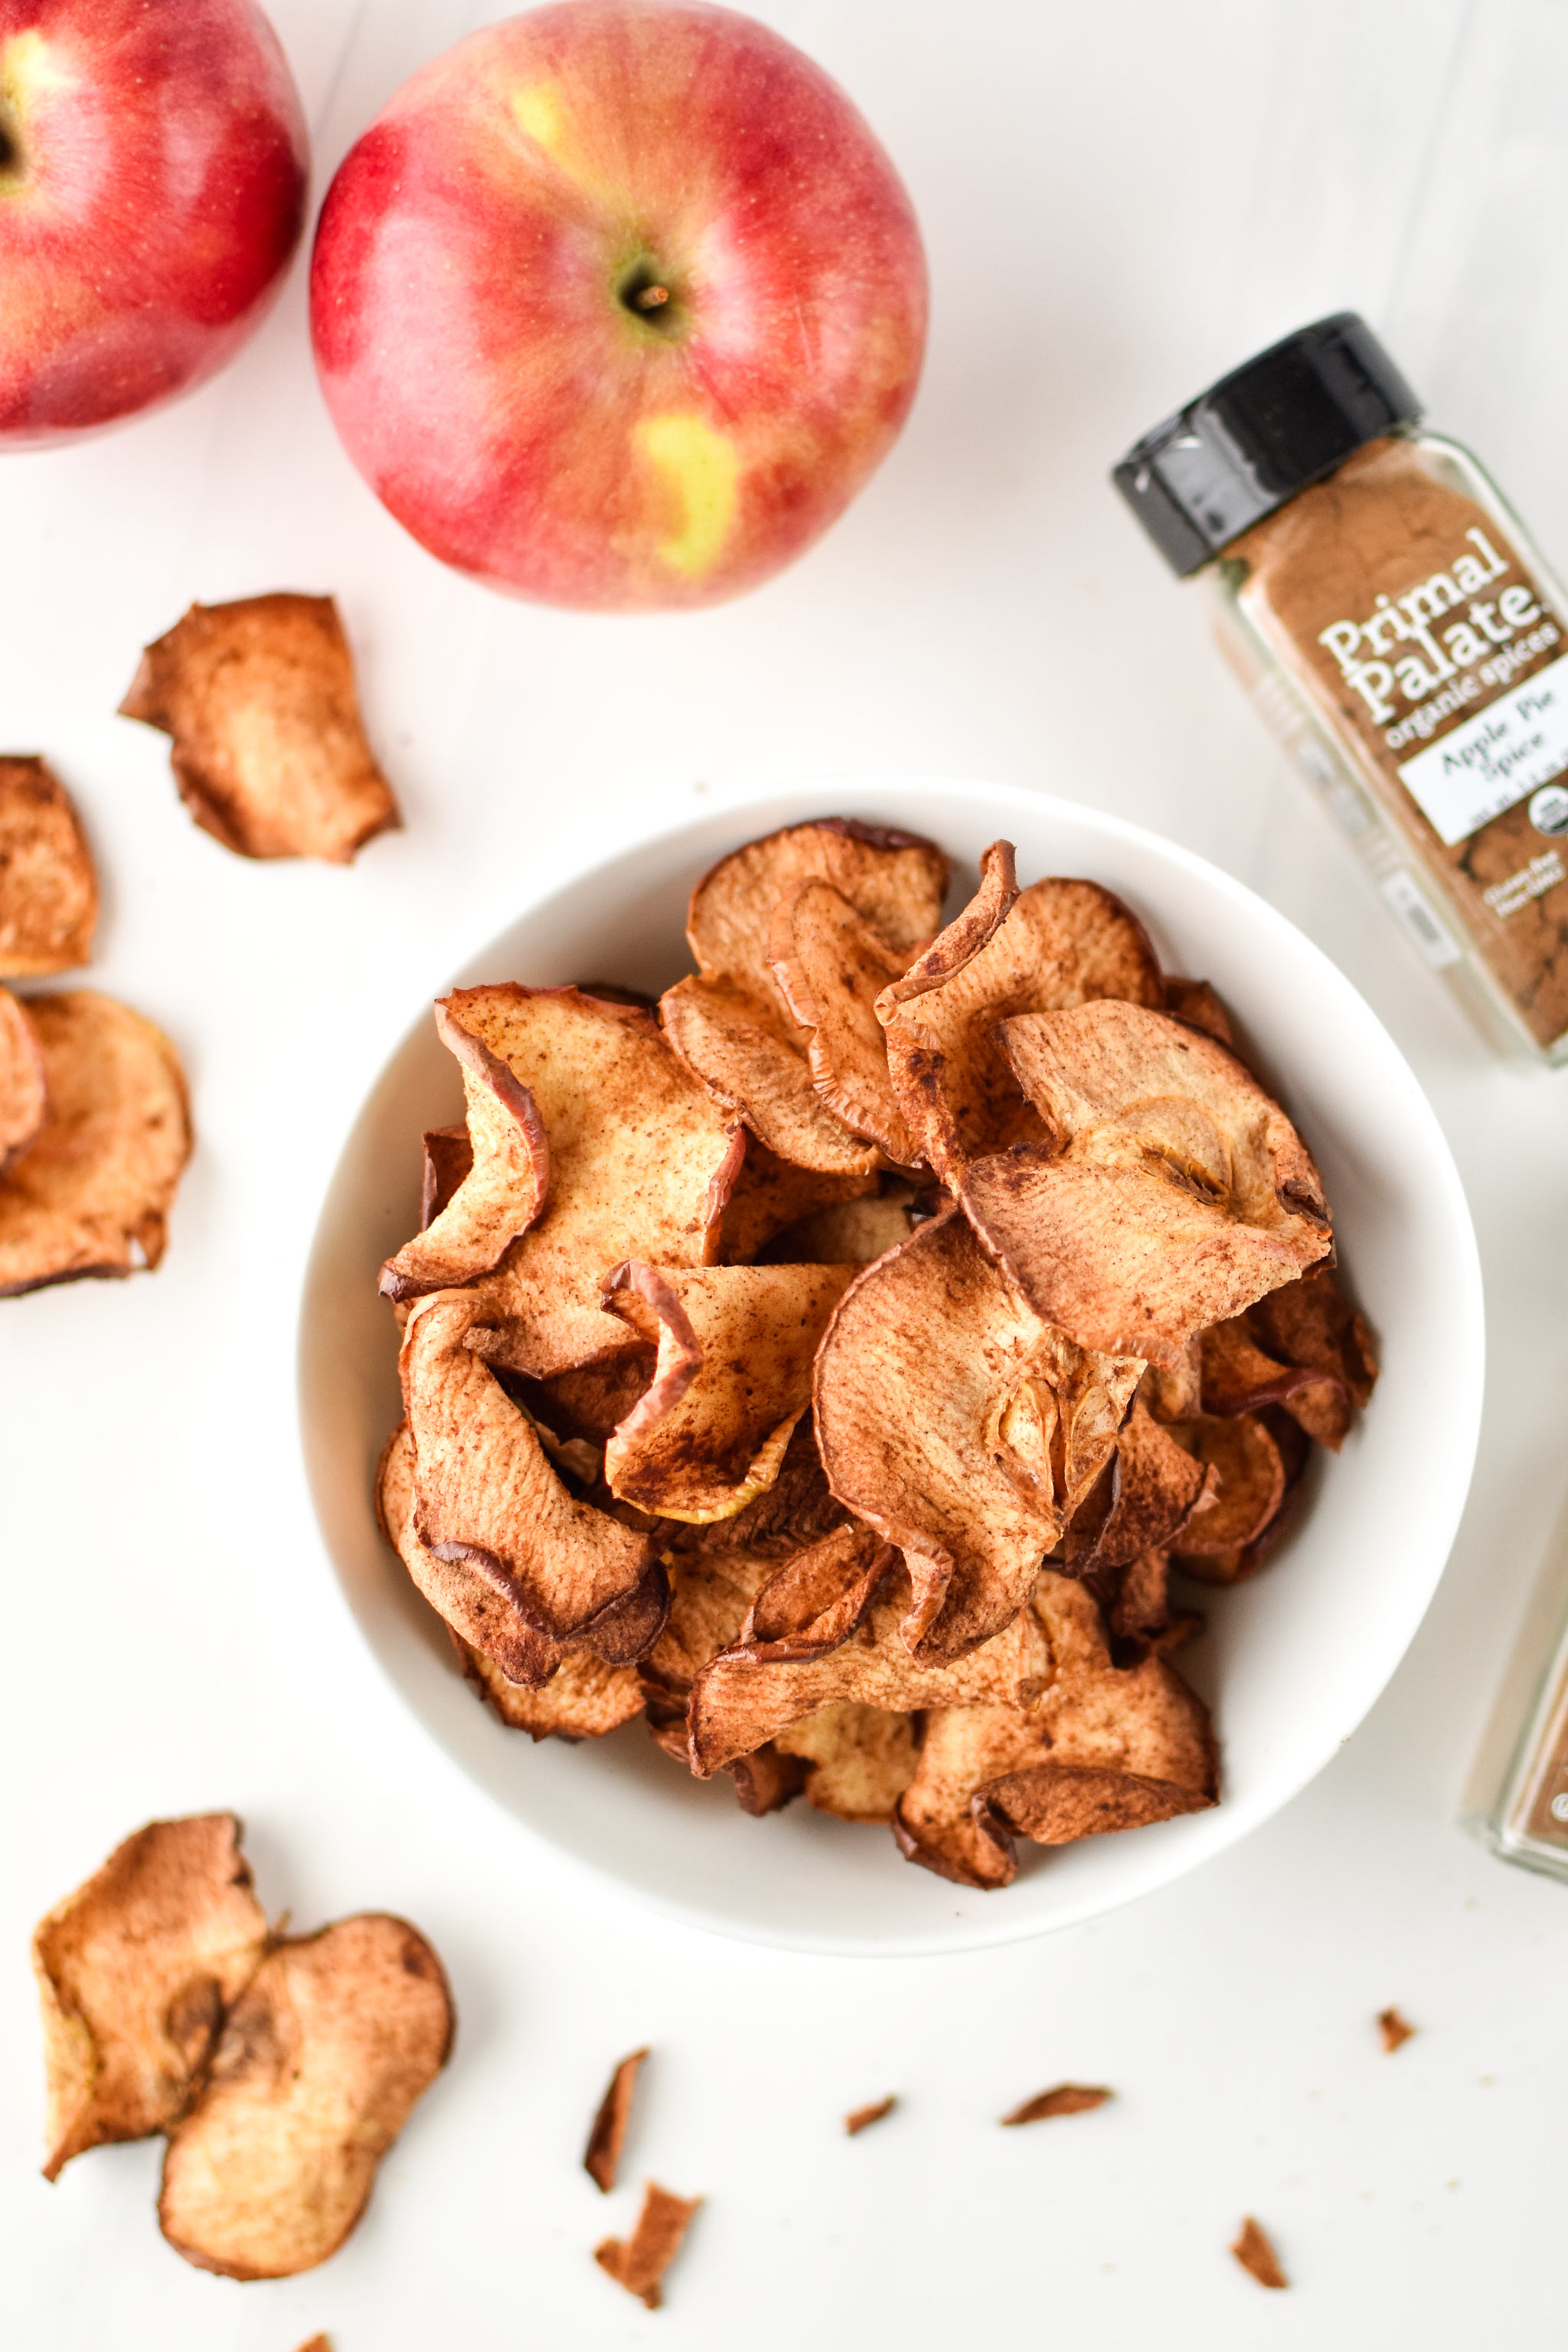 Apple chips photographed from above with apples for how to make apple chips in an air fryer.